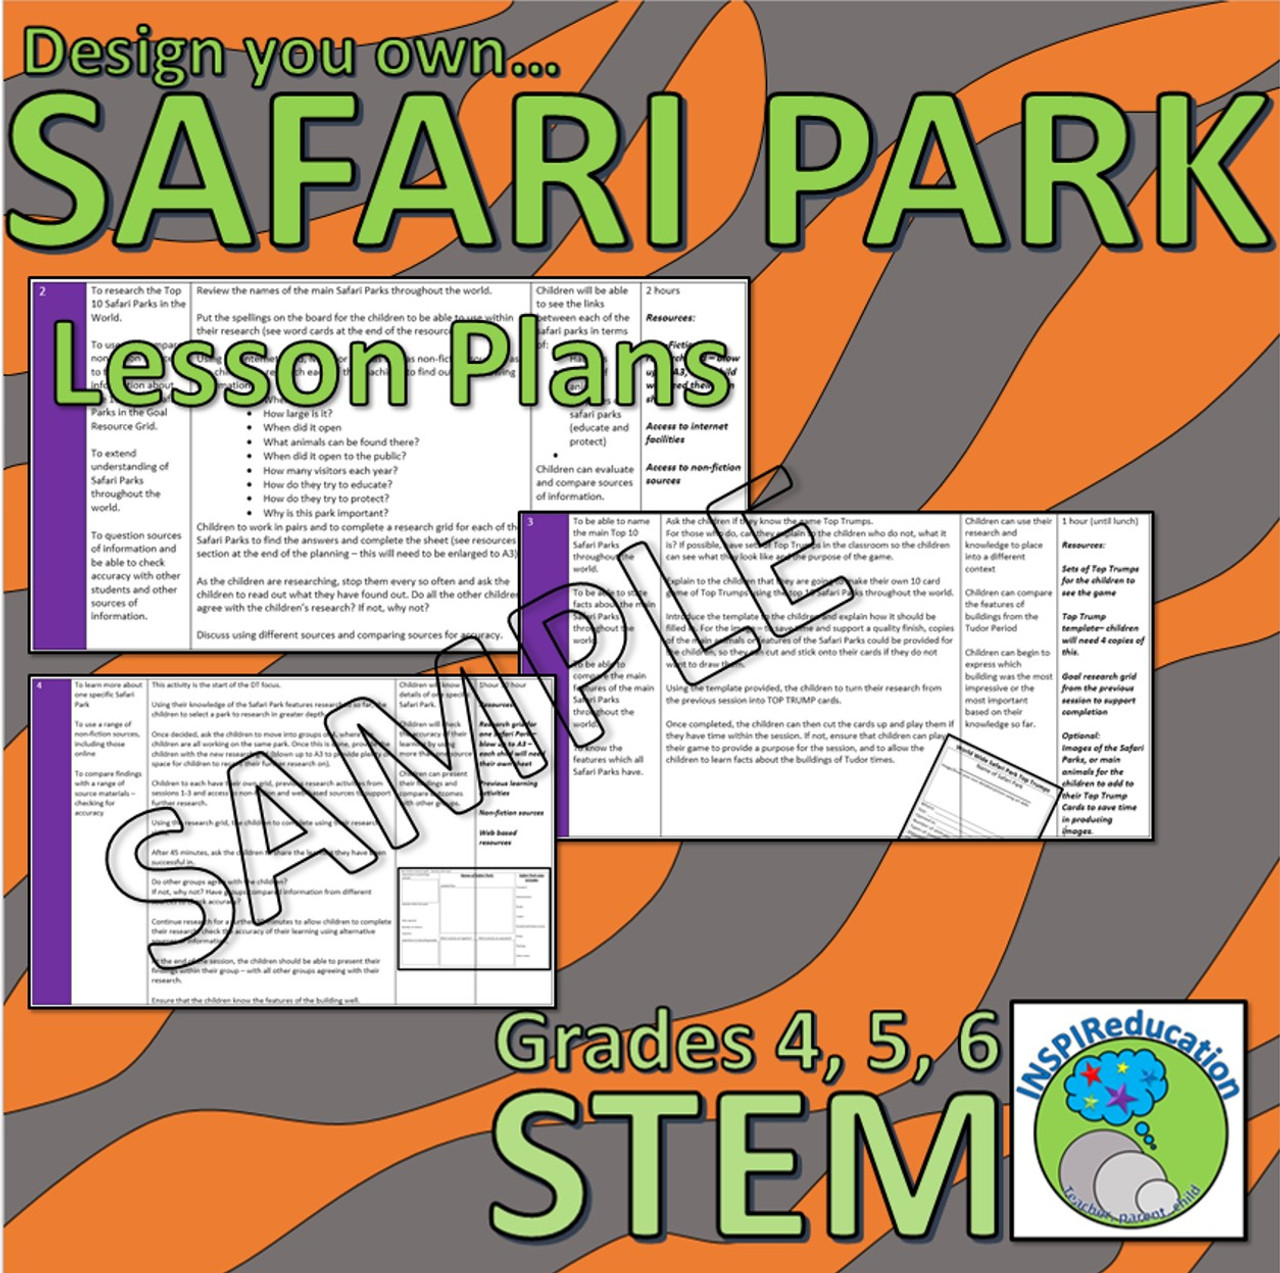 STEM: Research and Design your own Safari Park